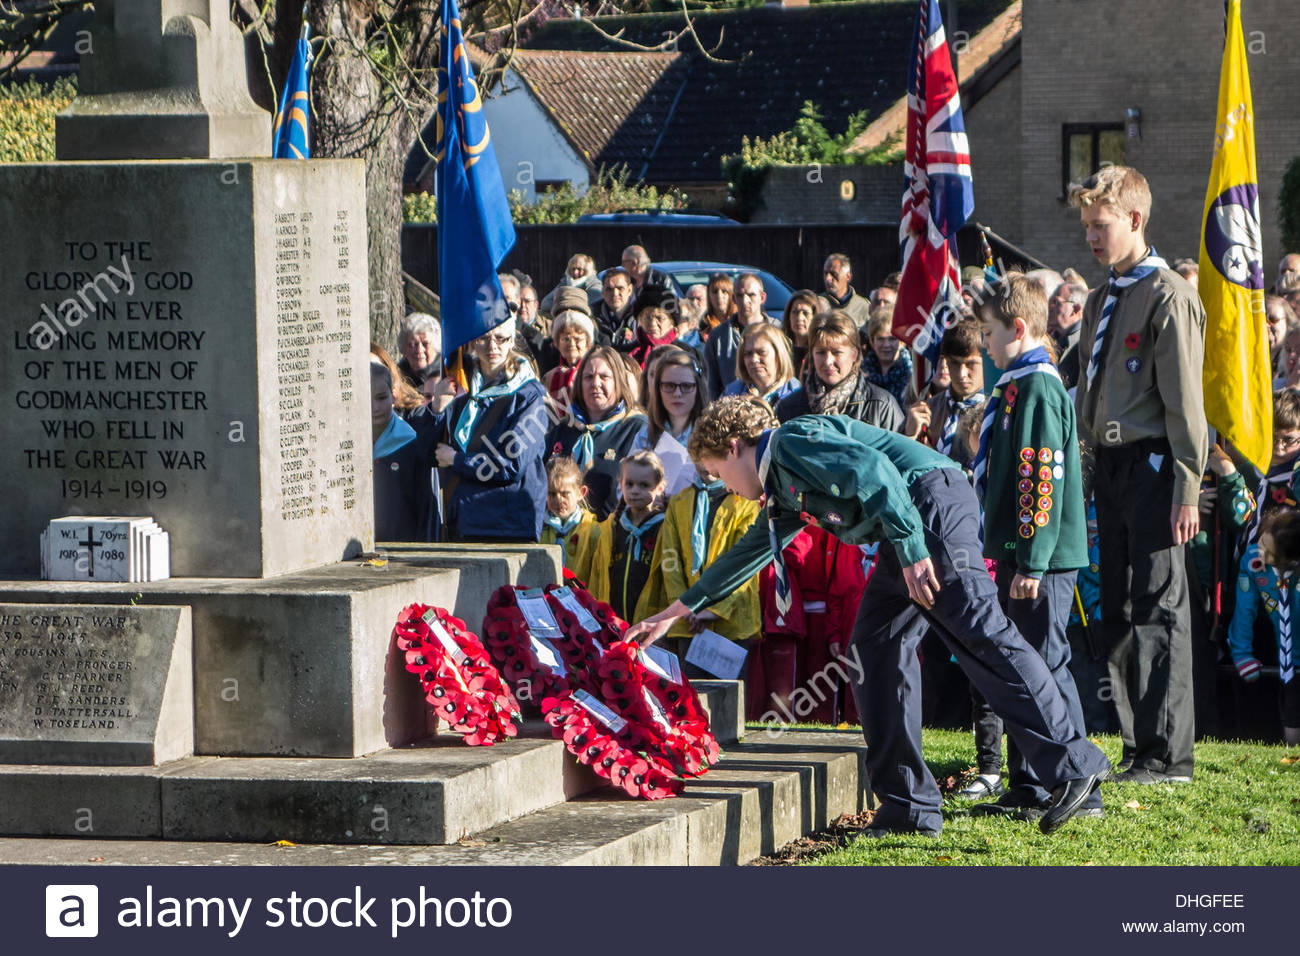 Scouts lay a poppy wreath at the war memorial in Godmanchester, Cambridgeshire, England on the 10th November 2013 at the annual remembrance service in the town. - Stock Image